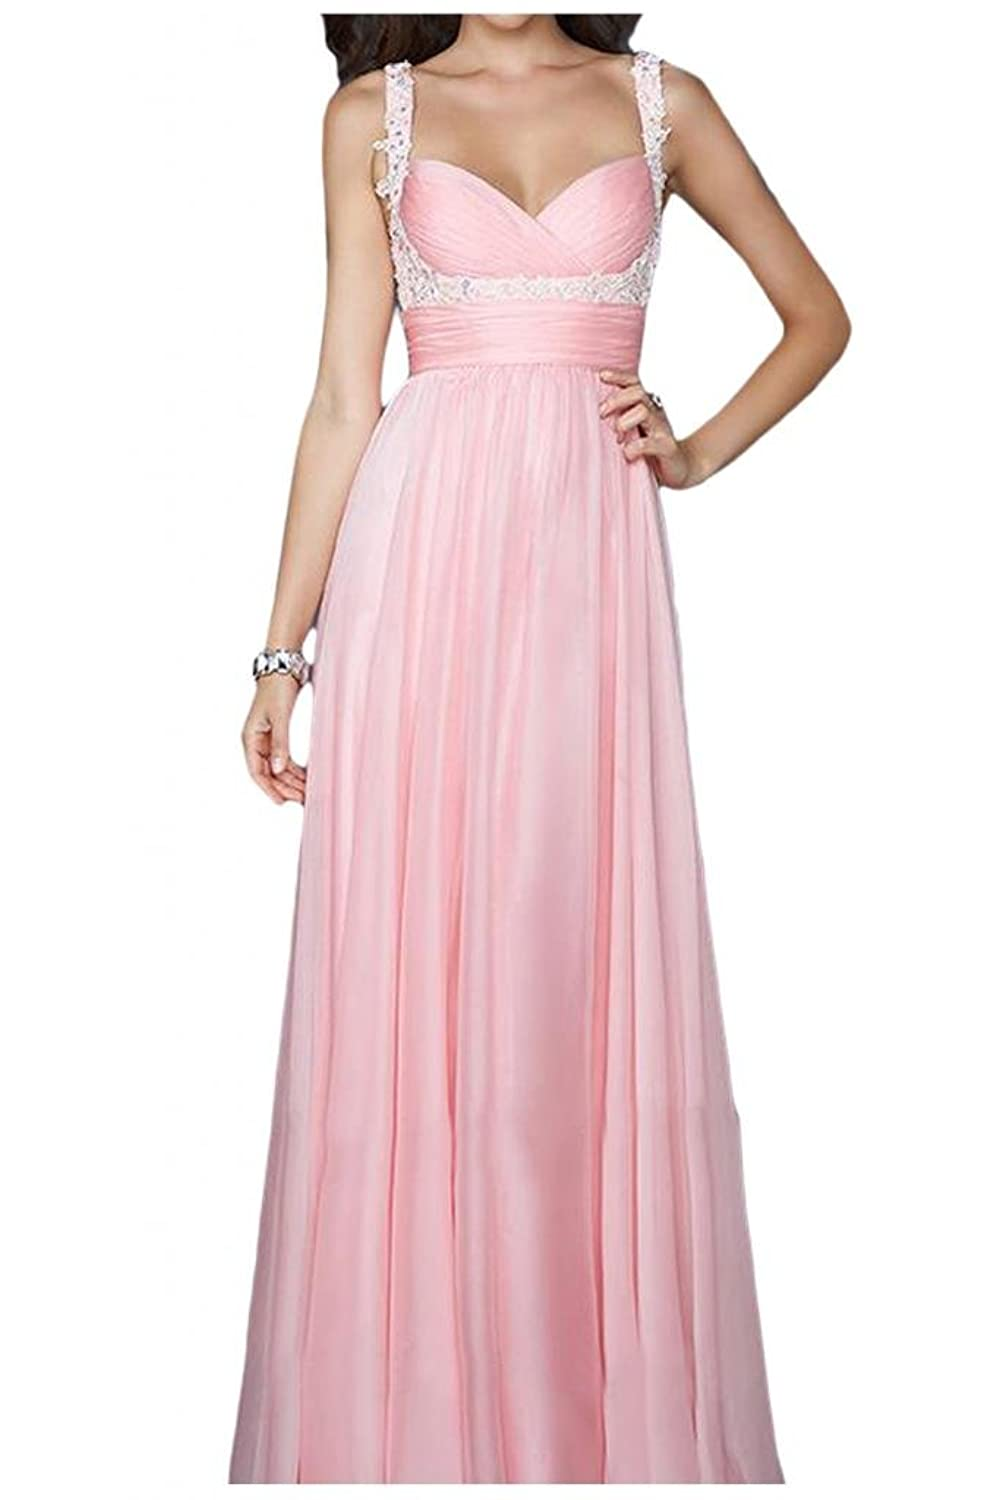 Gorgeous Bride Empire Sweetheart Long Evening Dresses Bridesmaid Dresses